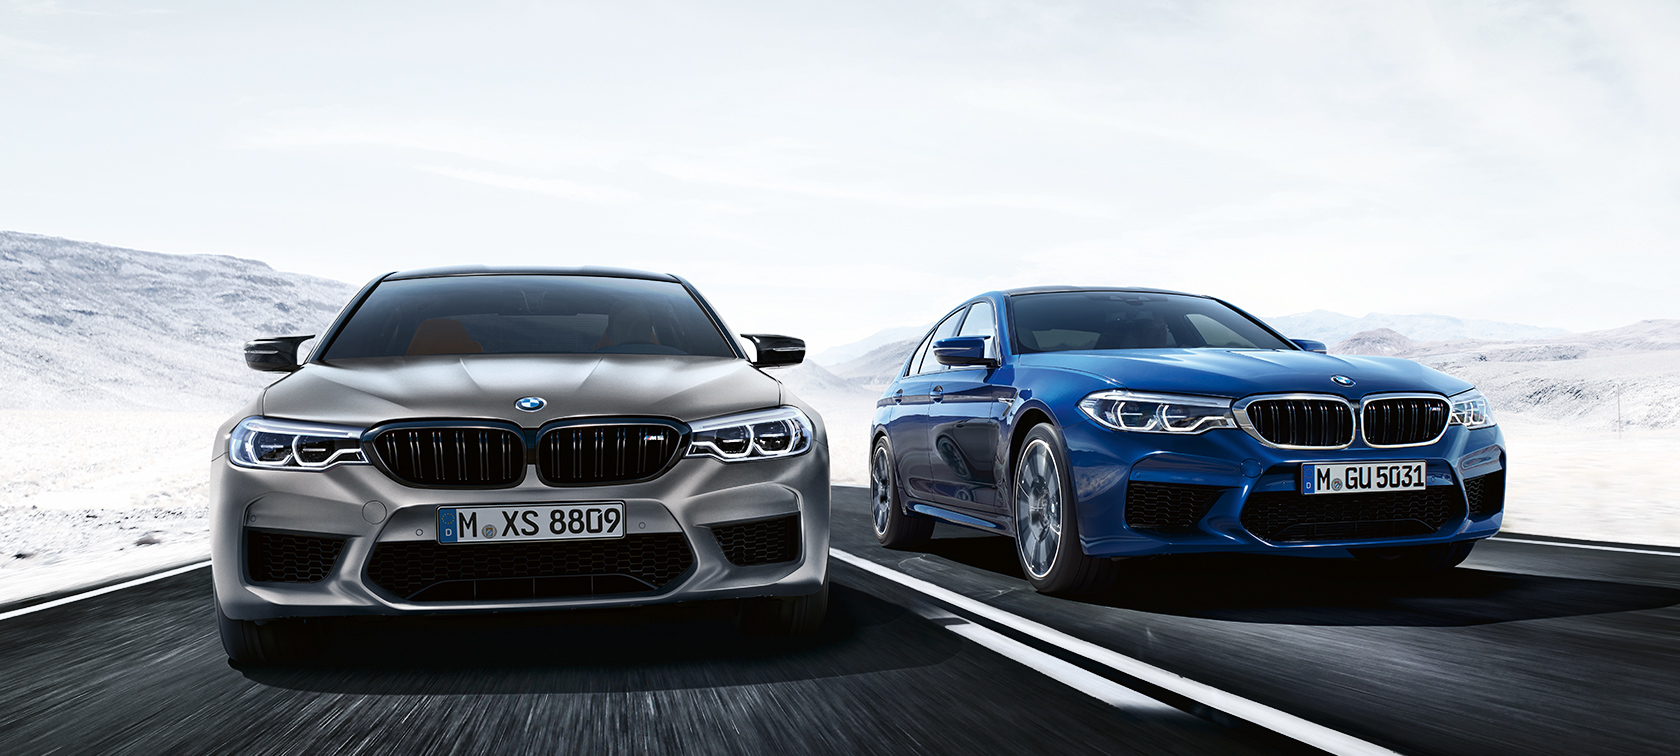 BMW M-Series M5 Sedan in silver and bright blue racing in snow